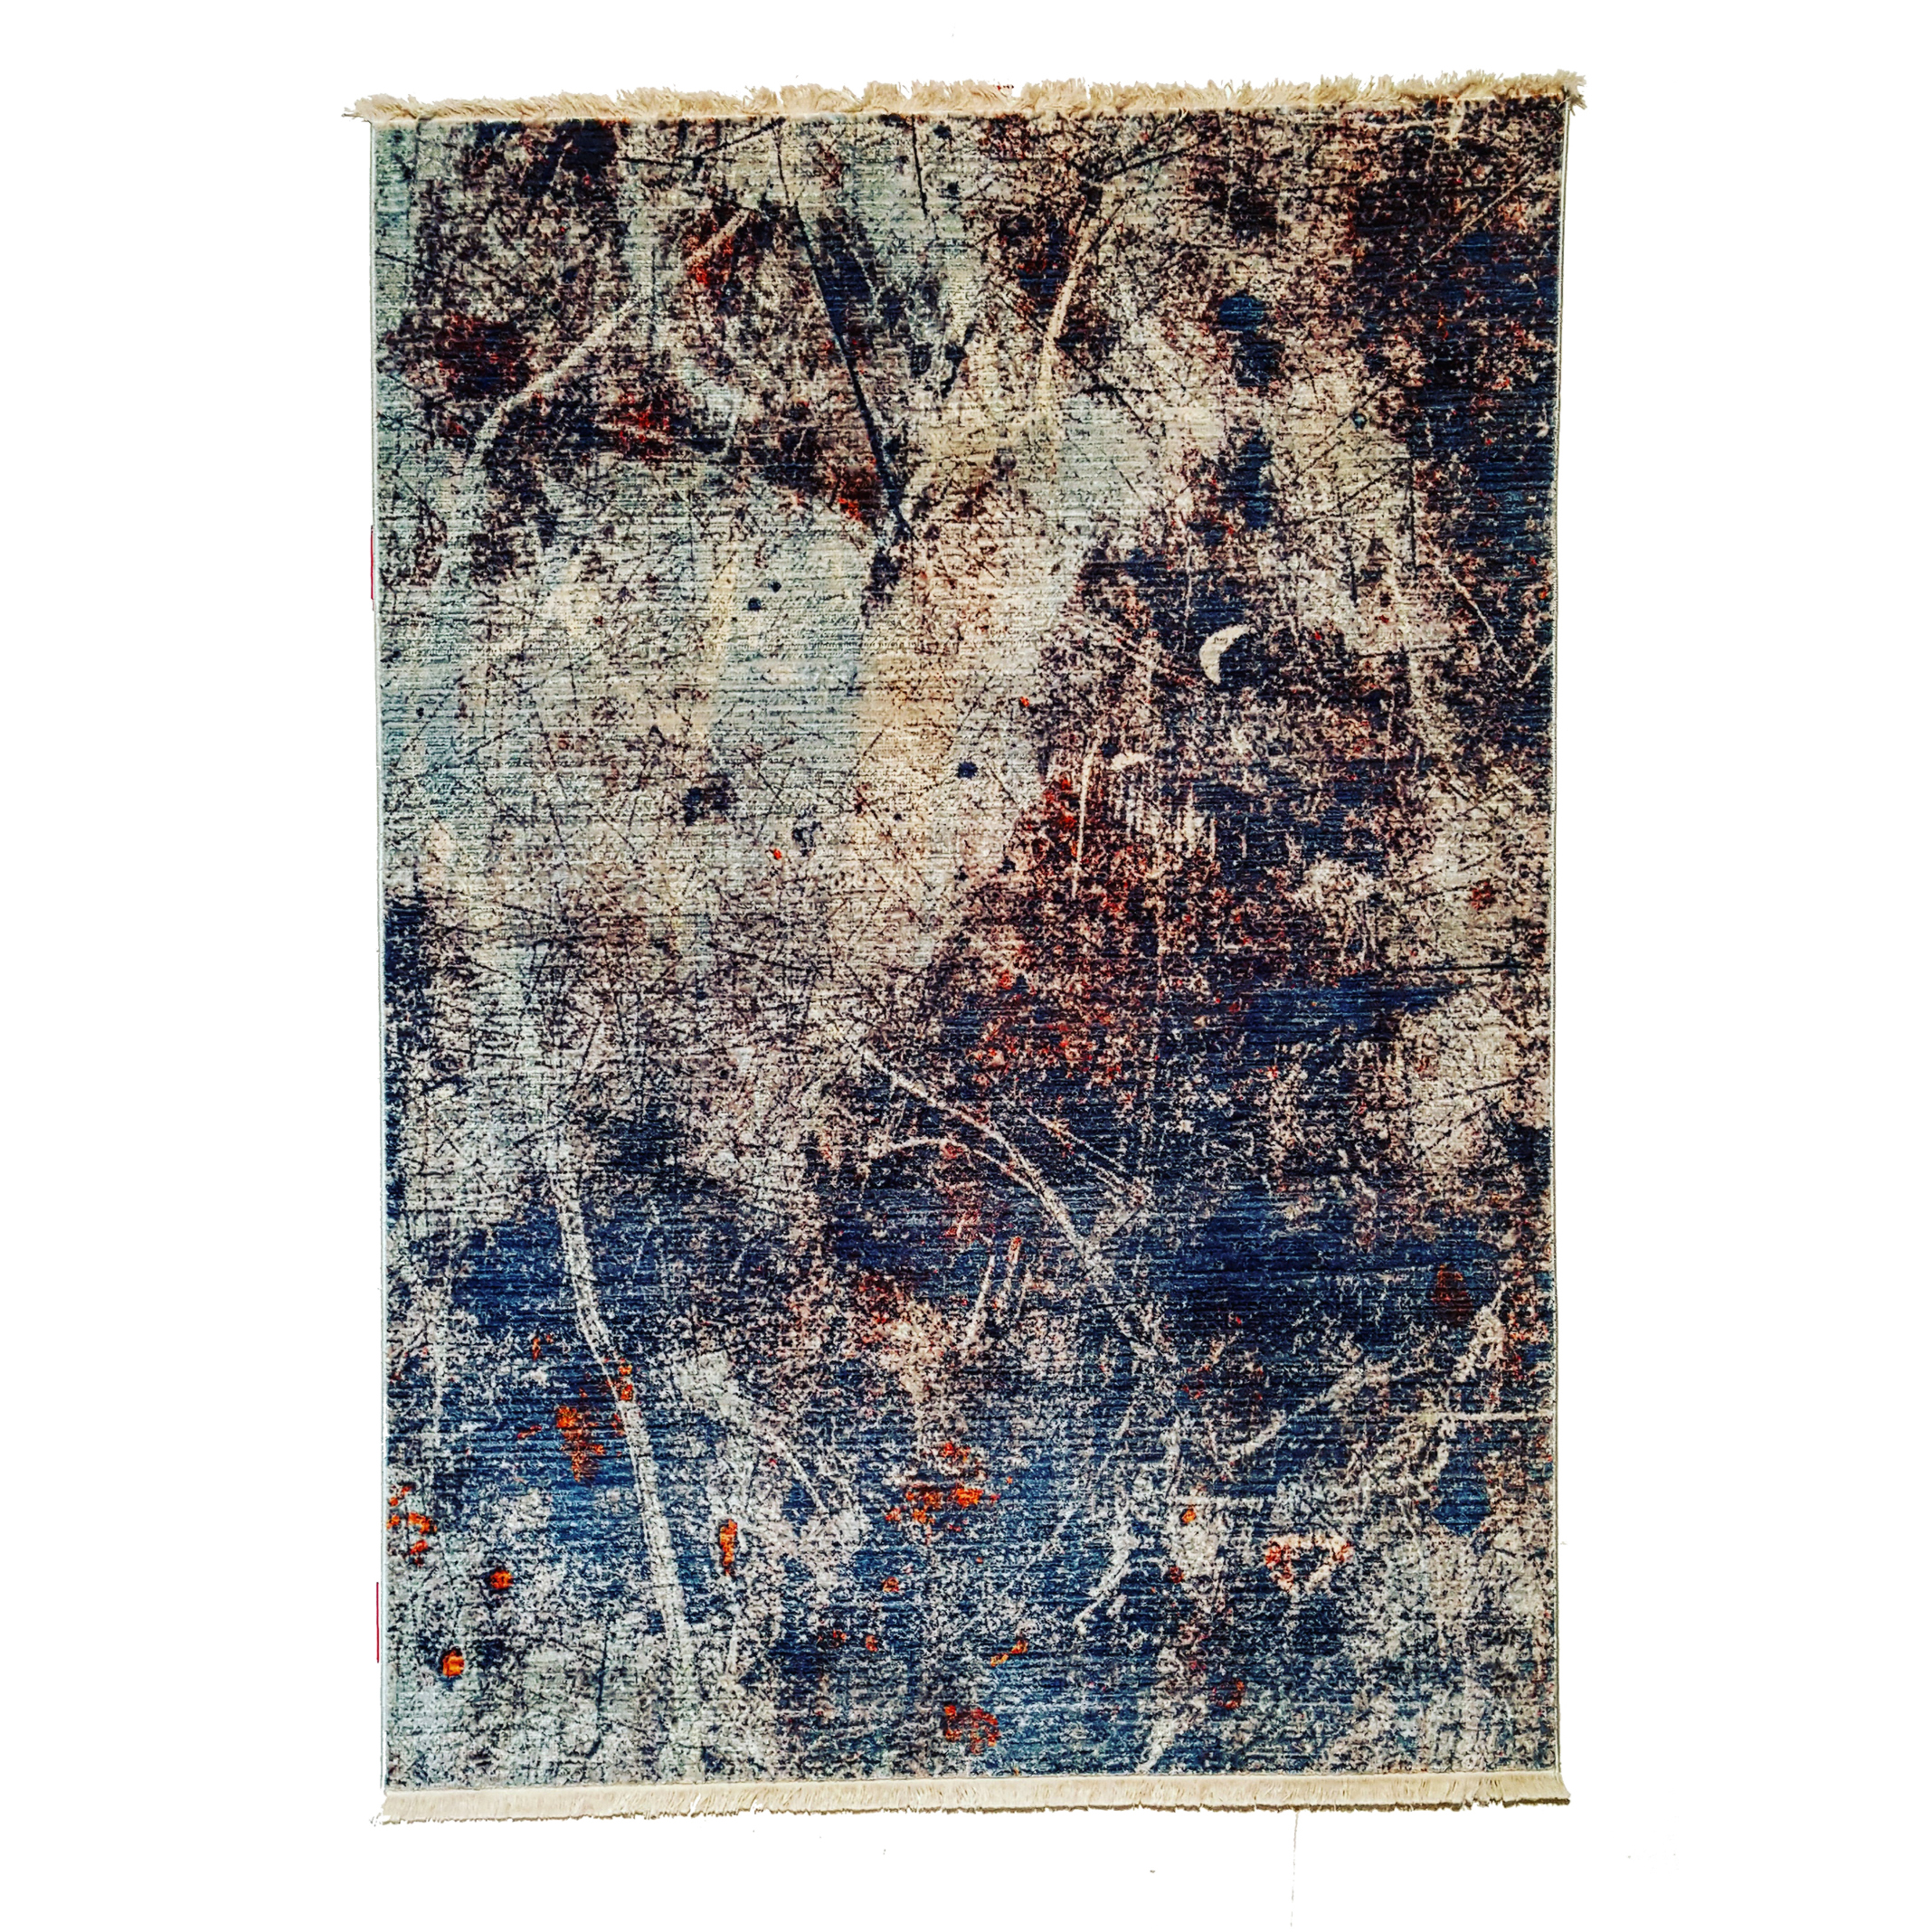 BURSA Turkish art rug from Morelli Rugs